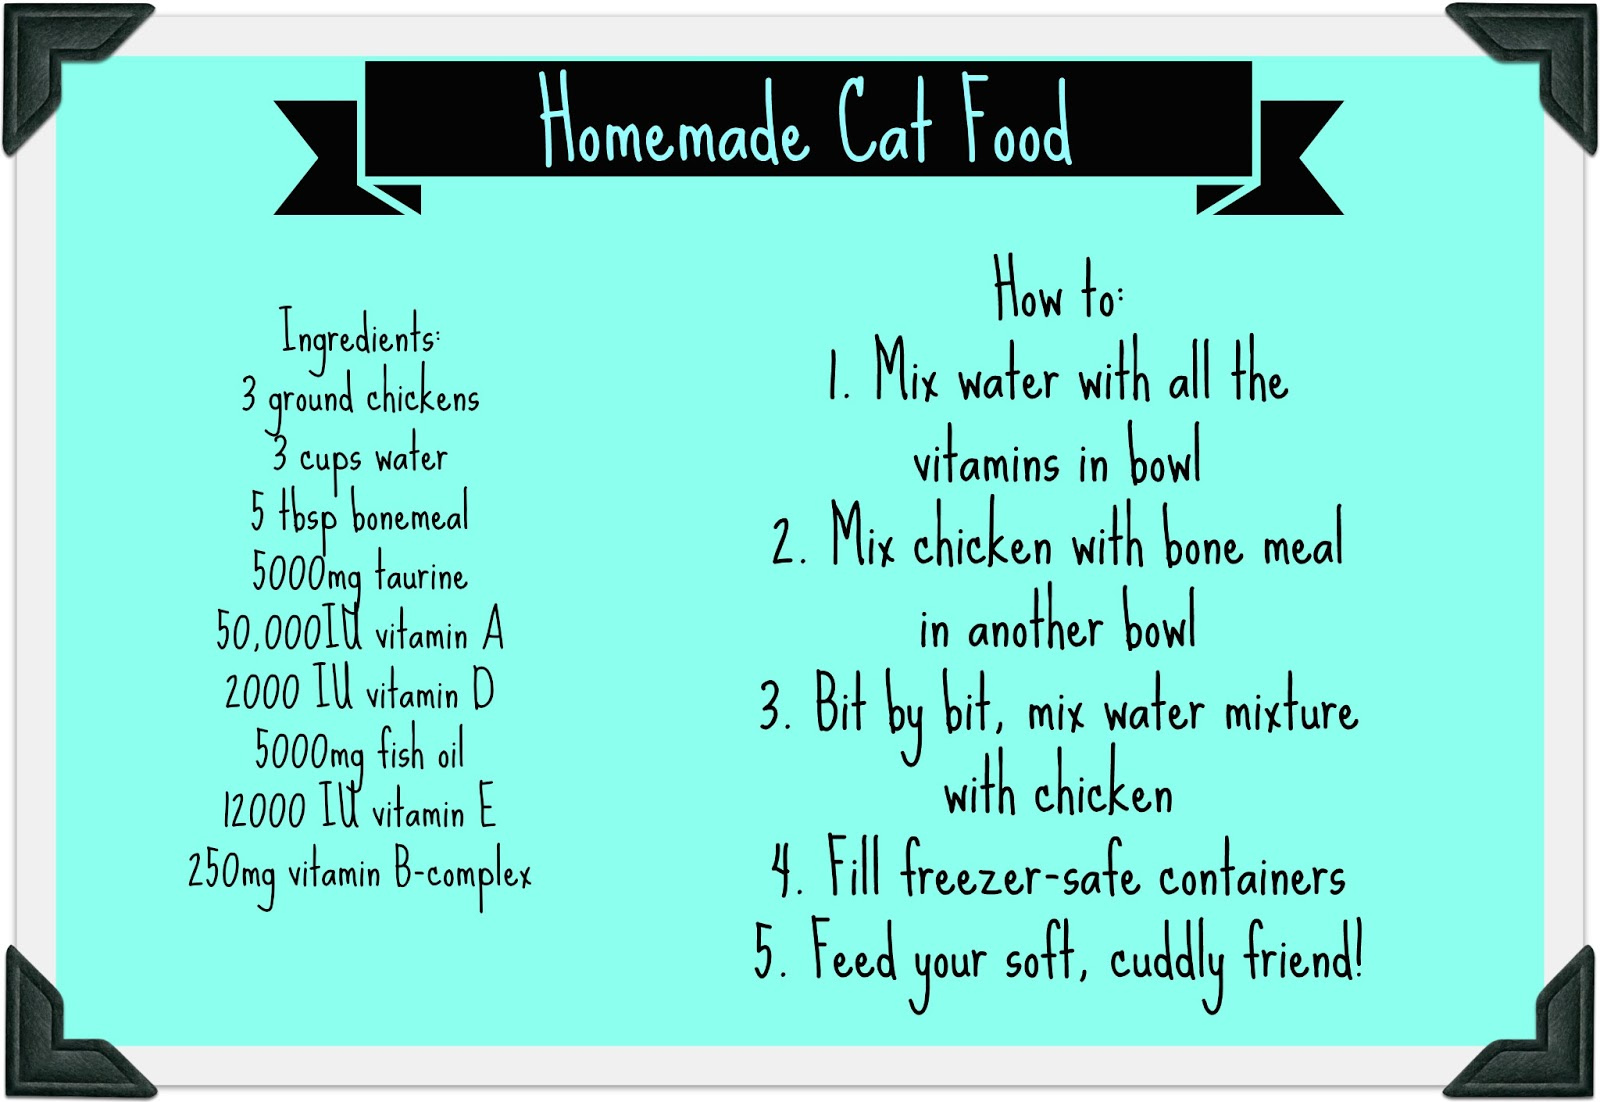 Food recipe homemade cat food recipe images of homemade cat food recipe forumfinder